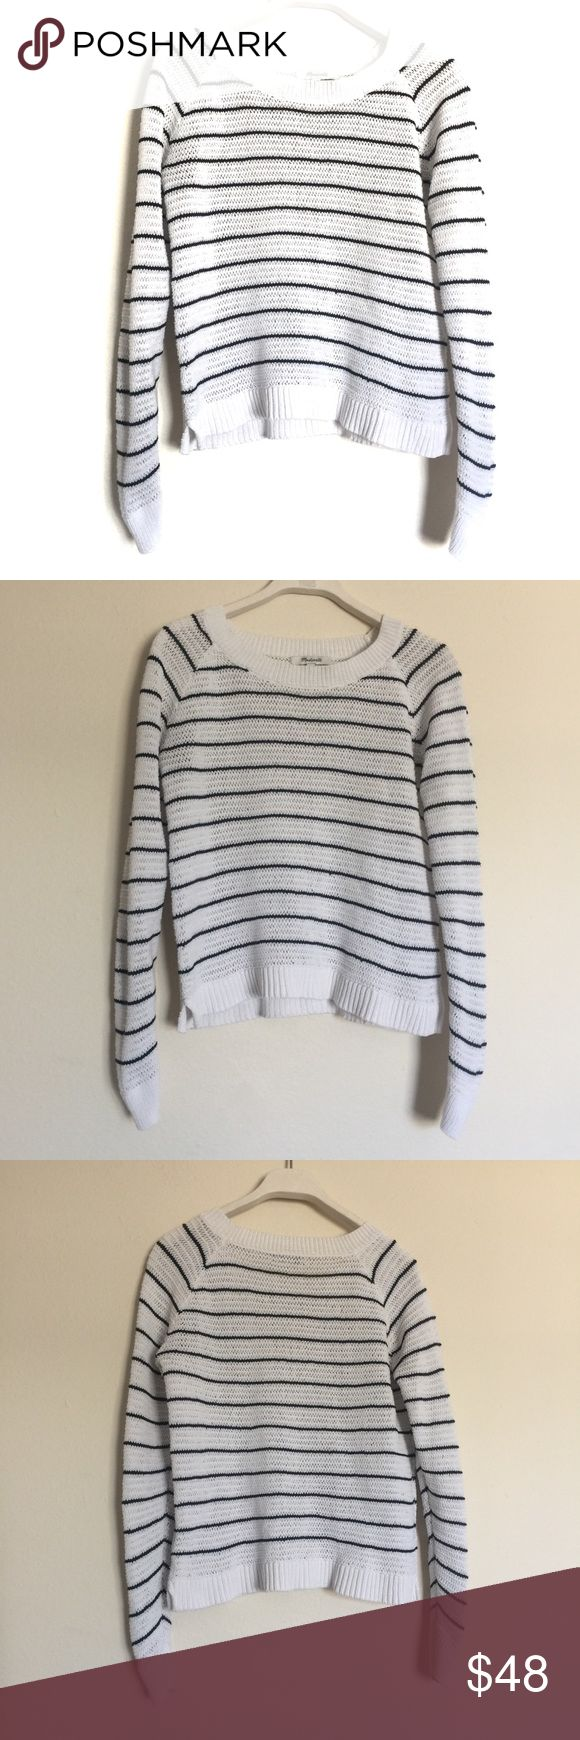 """MADEWELL Dockline Pullover Sweater Mariner Stripe Excellent condition. Open knit with crew neck, ribbed cuffs and hem. Pit to pit 18"""", length 21"""". 100% cotton. Madewell Sweaters"""